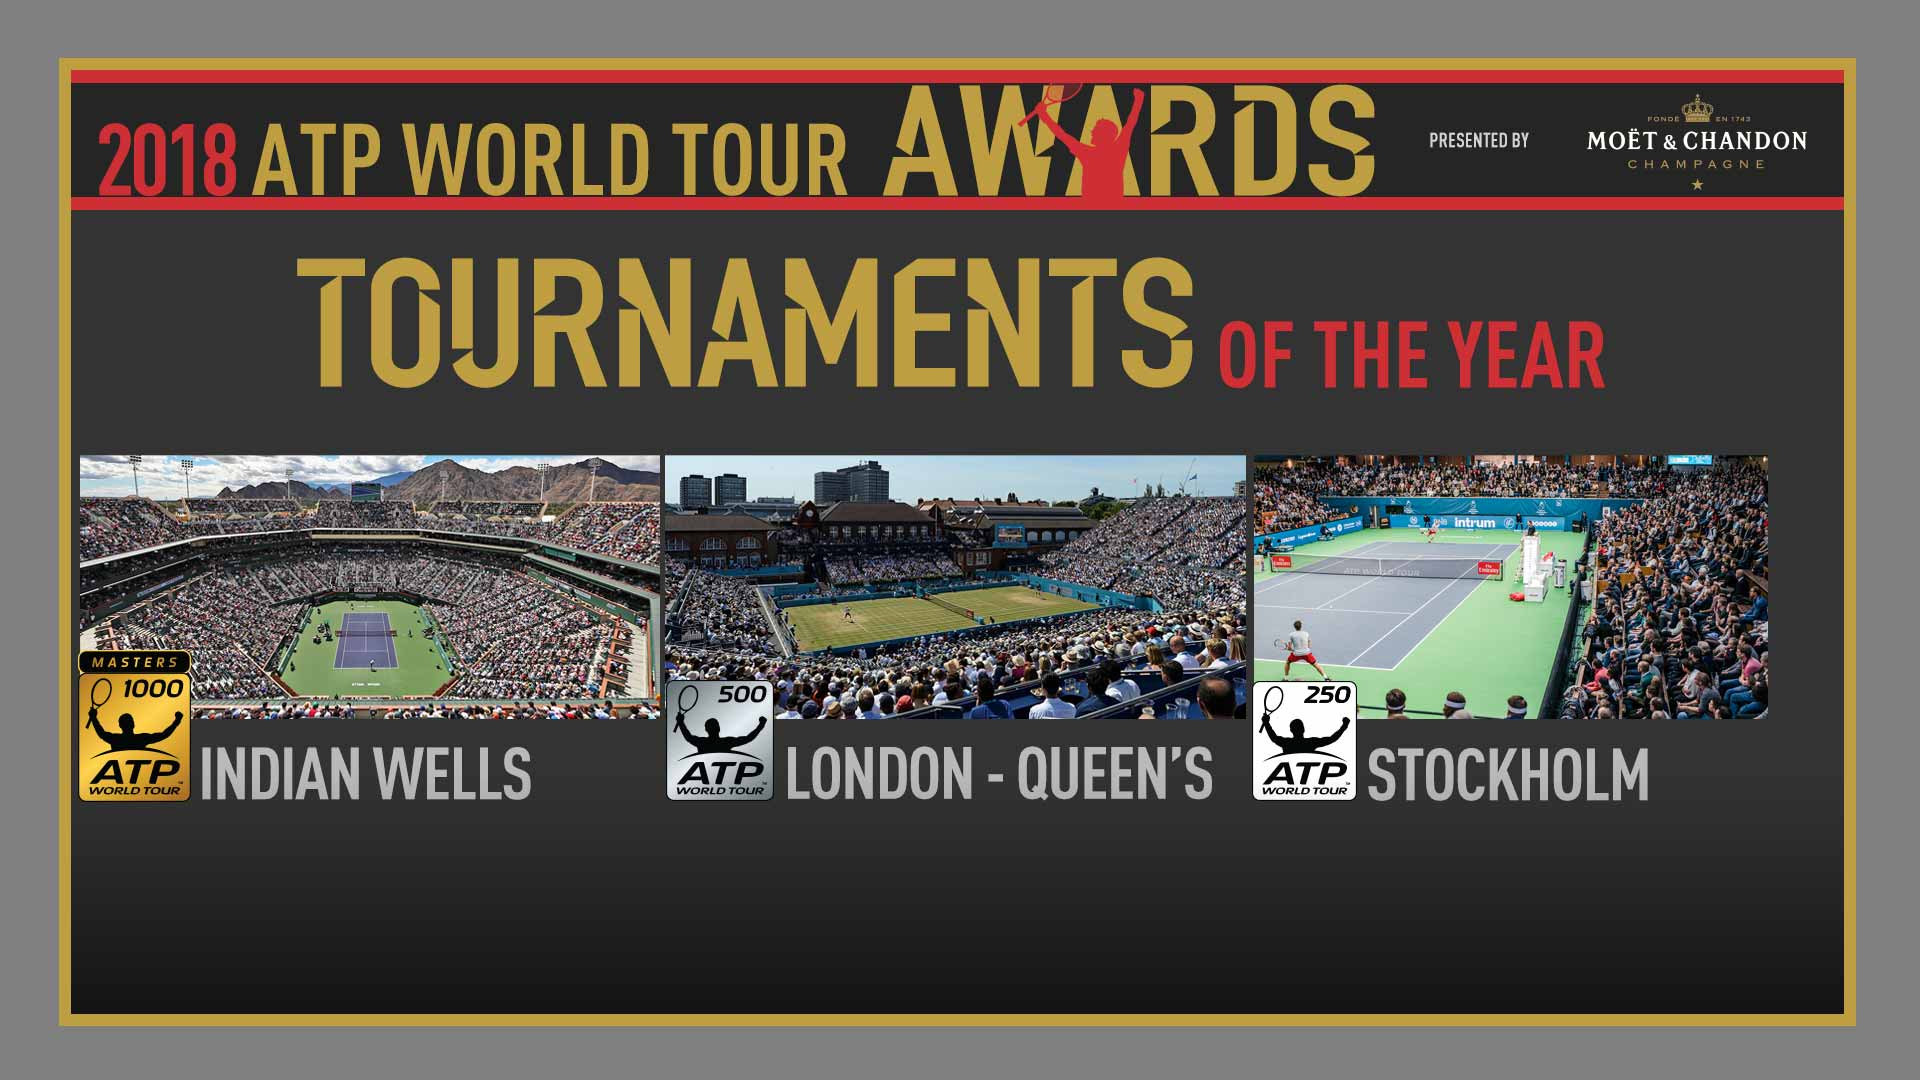 Tournaments of the Year